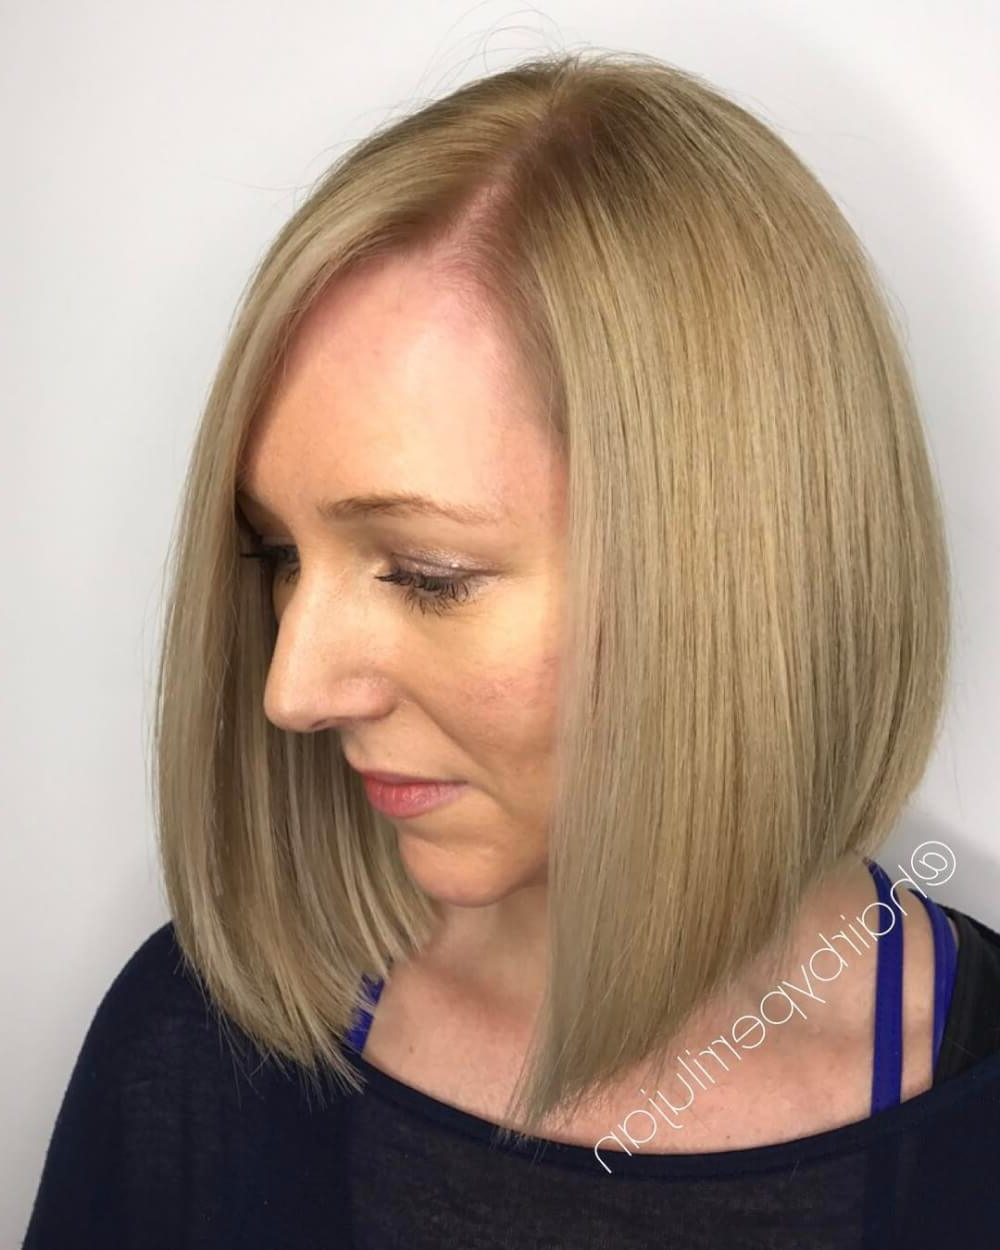 49 Chic Short Bob Hairstyles & Haircuts For Women In 2018 Pertaining To Stacked Sleek White Blonde Bob Haircuts (View 10 of 20)